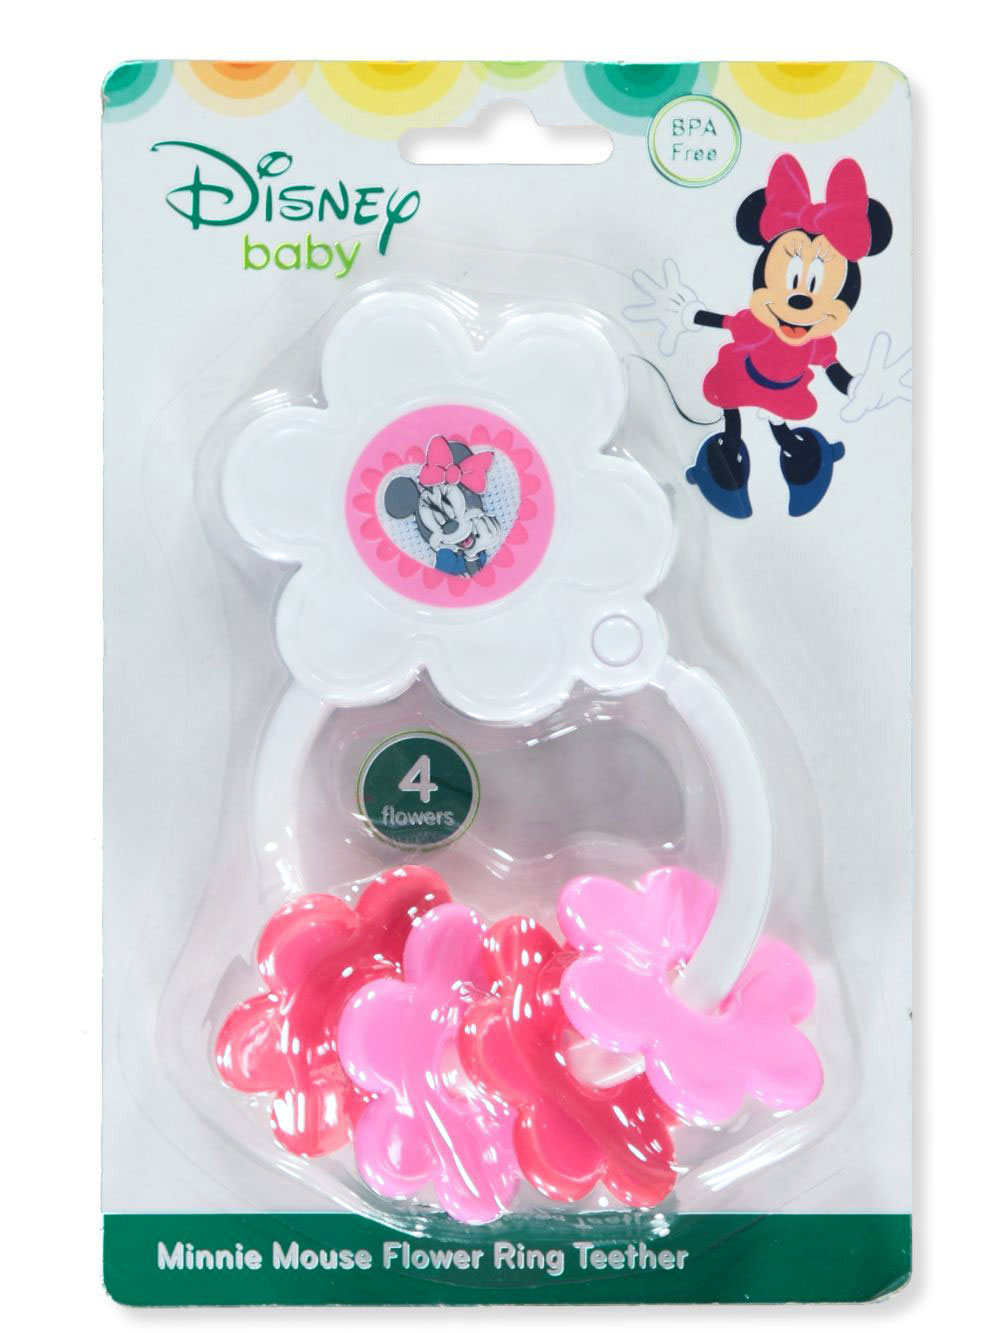 Minnie Mouse Flower Ring Teether